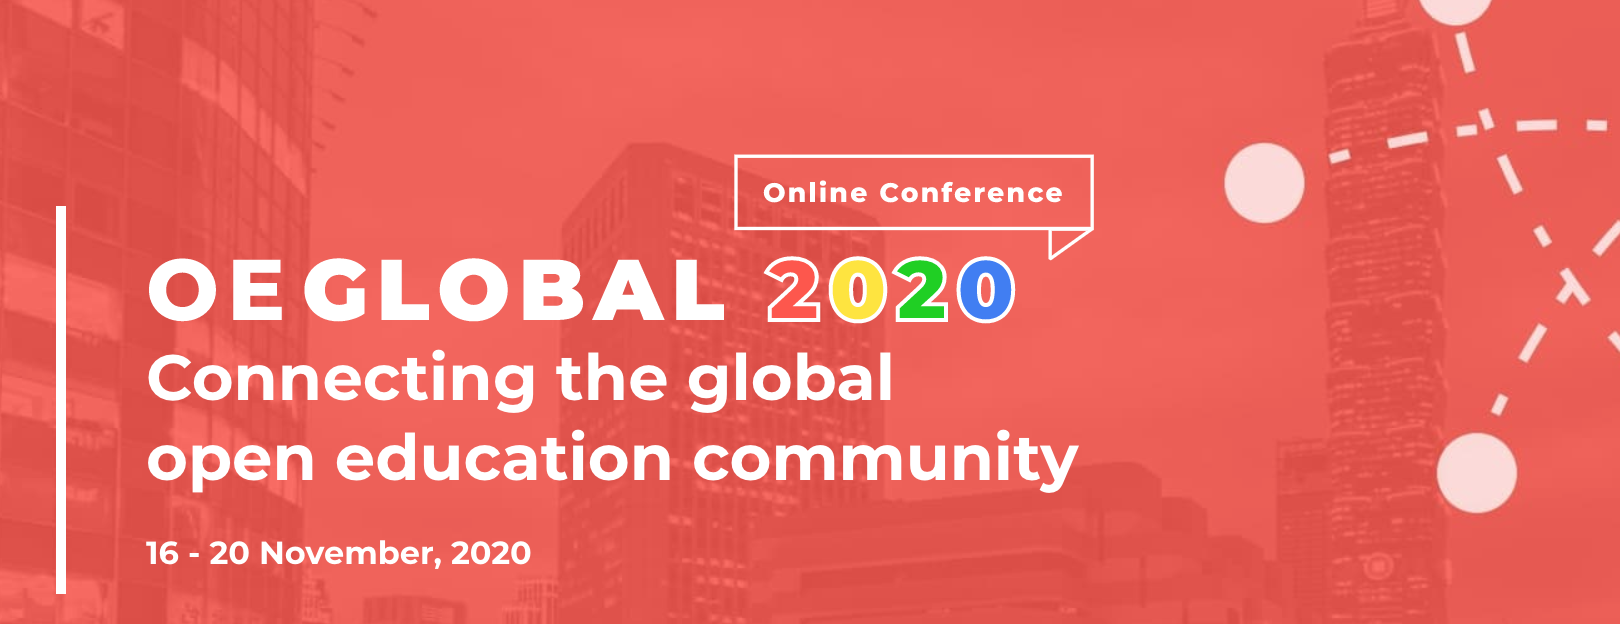 The Open Education Global 2020 conference: Connecting the global open education community